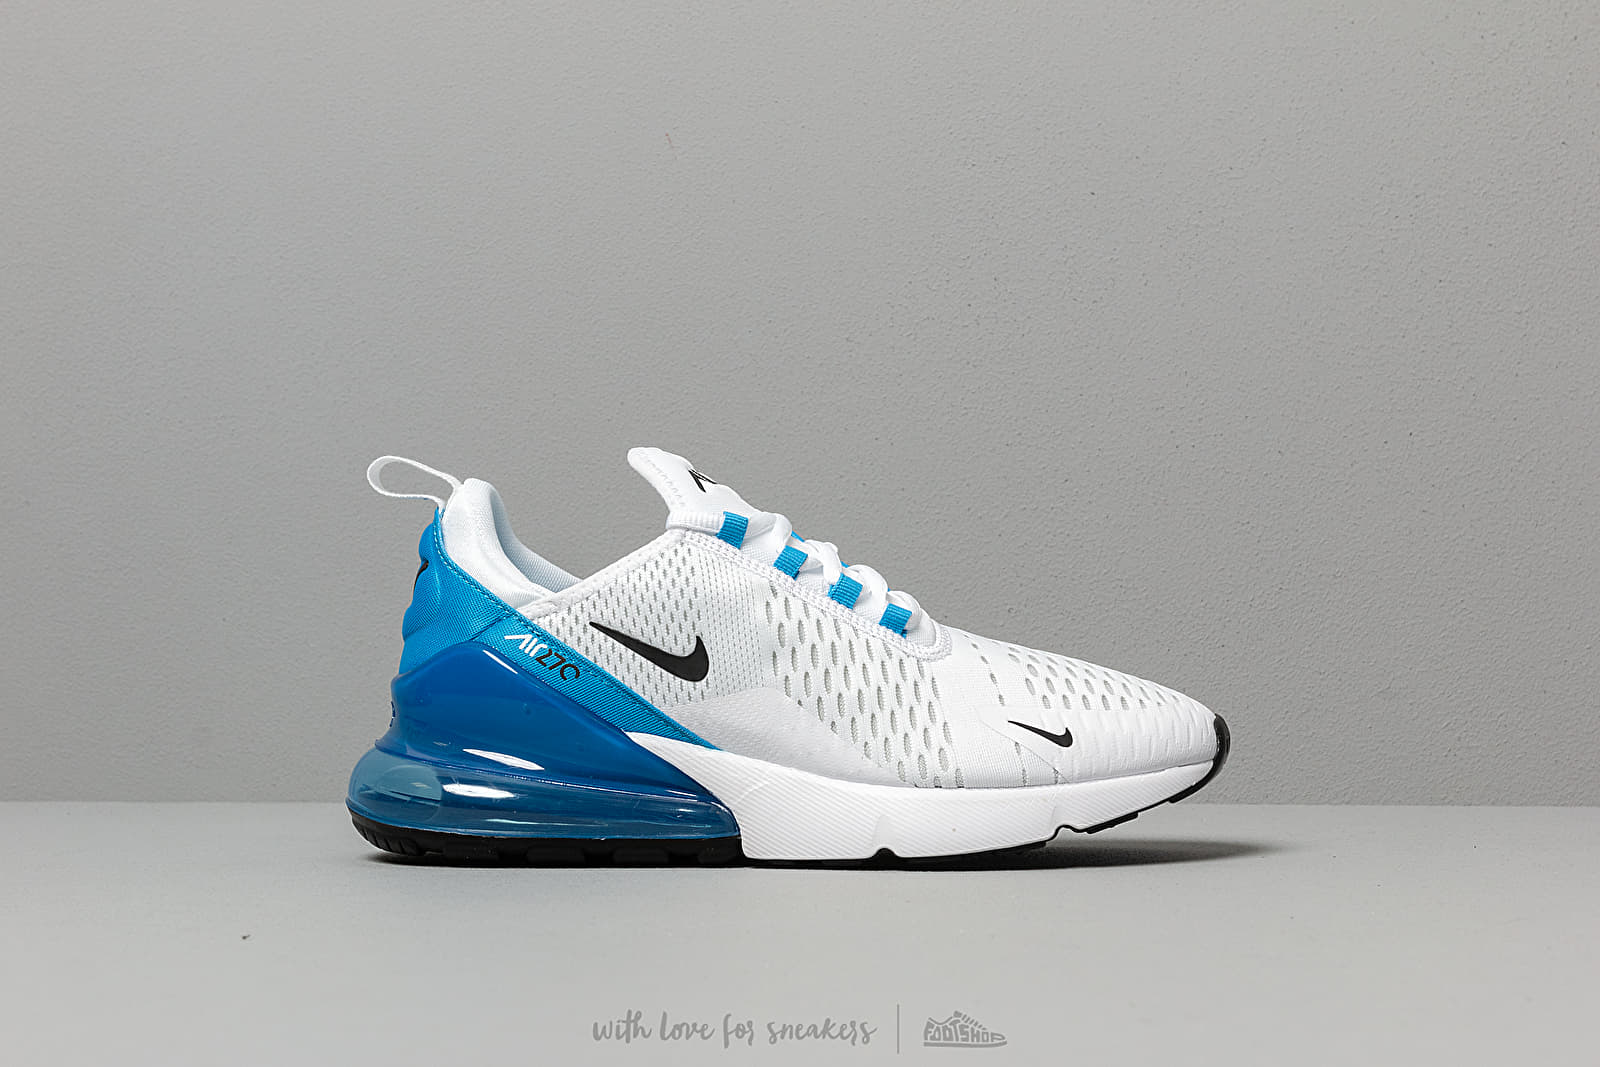 the best attitude d6daa 27b7e Nike Air Max 270 White/ Black-Photo Blue-Pure Platinum ...